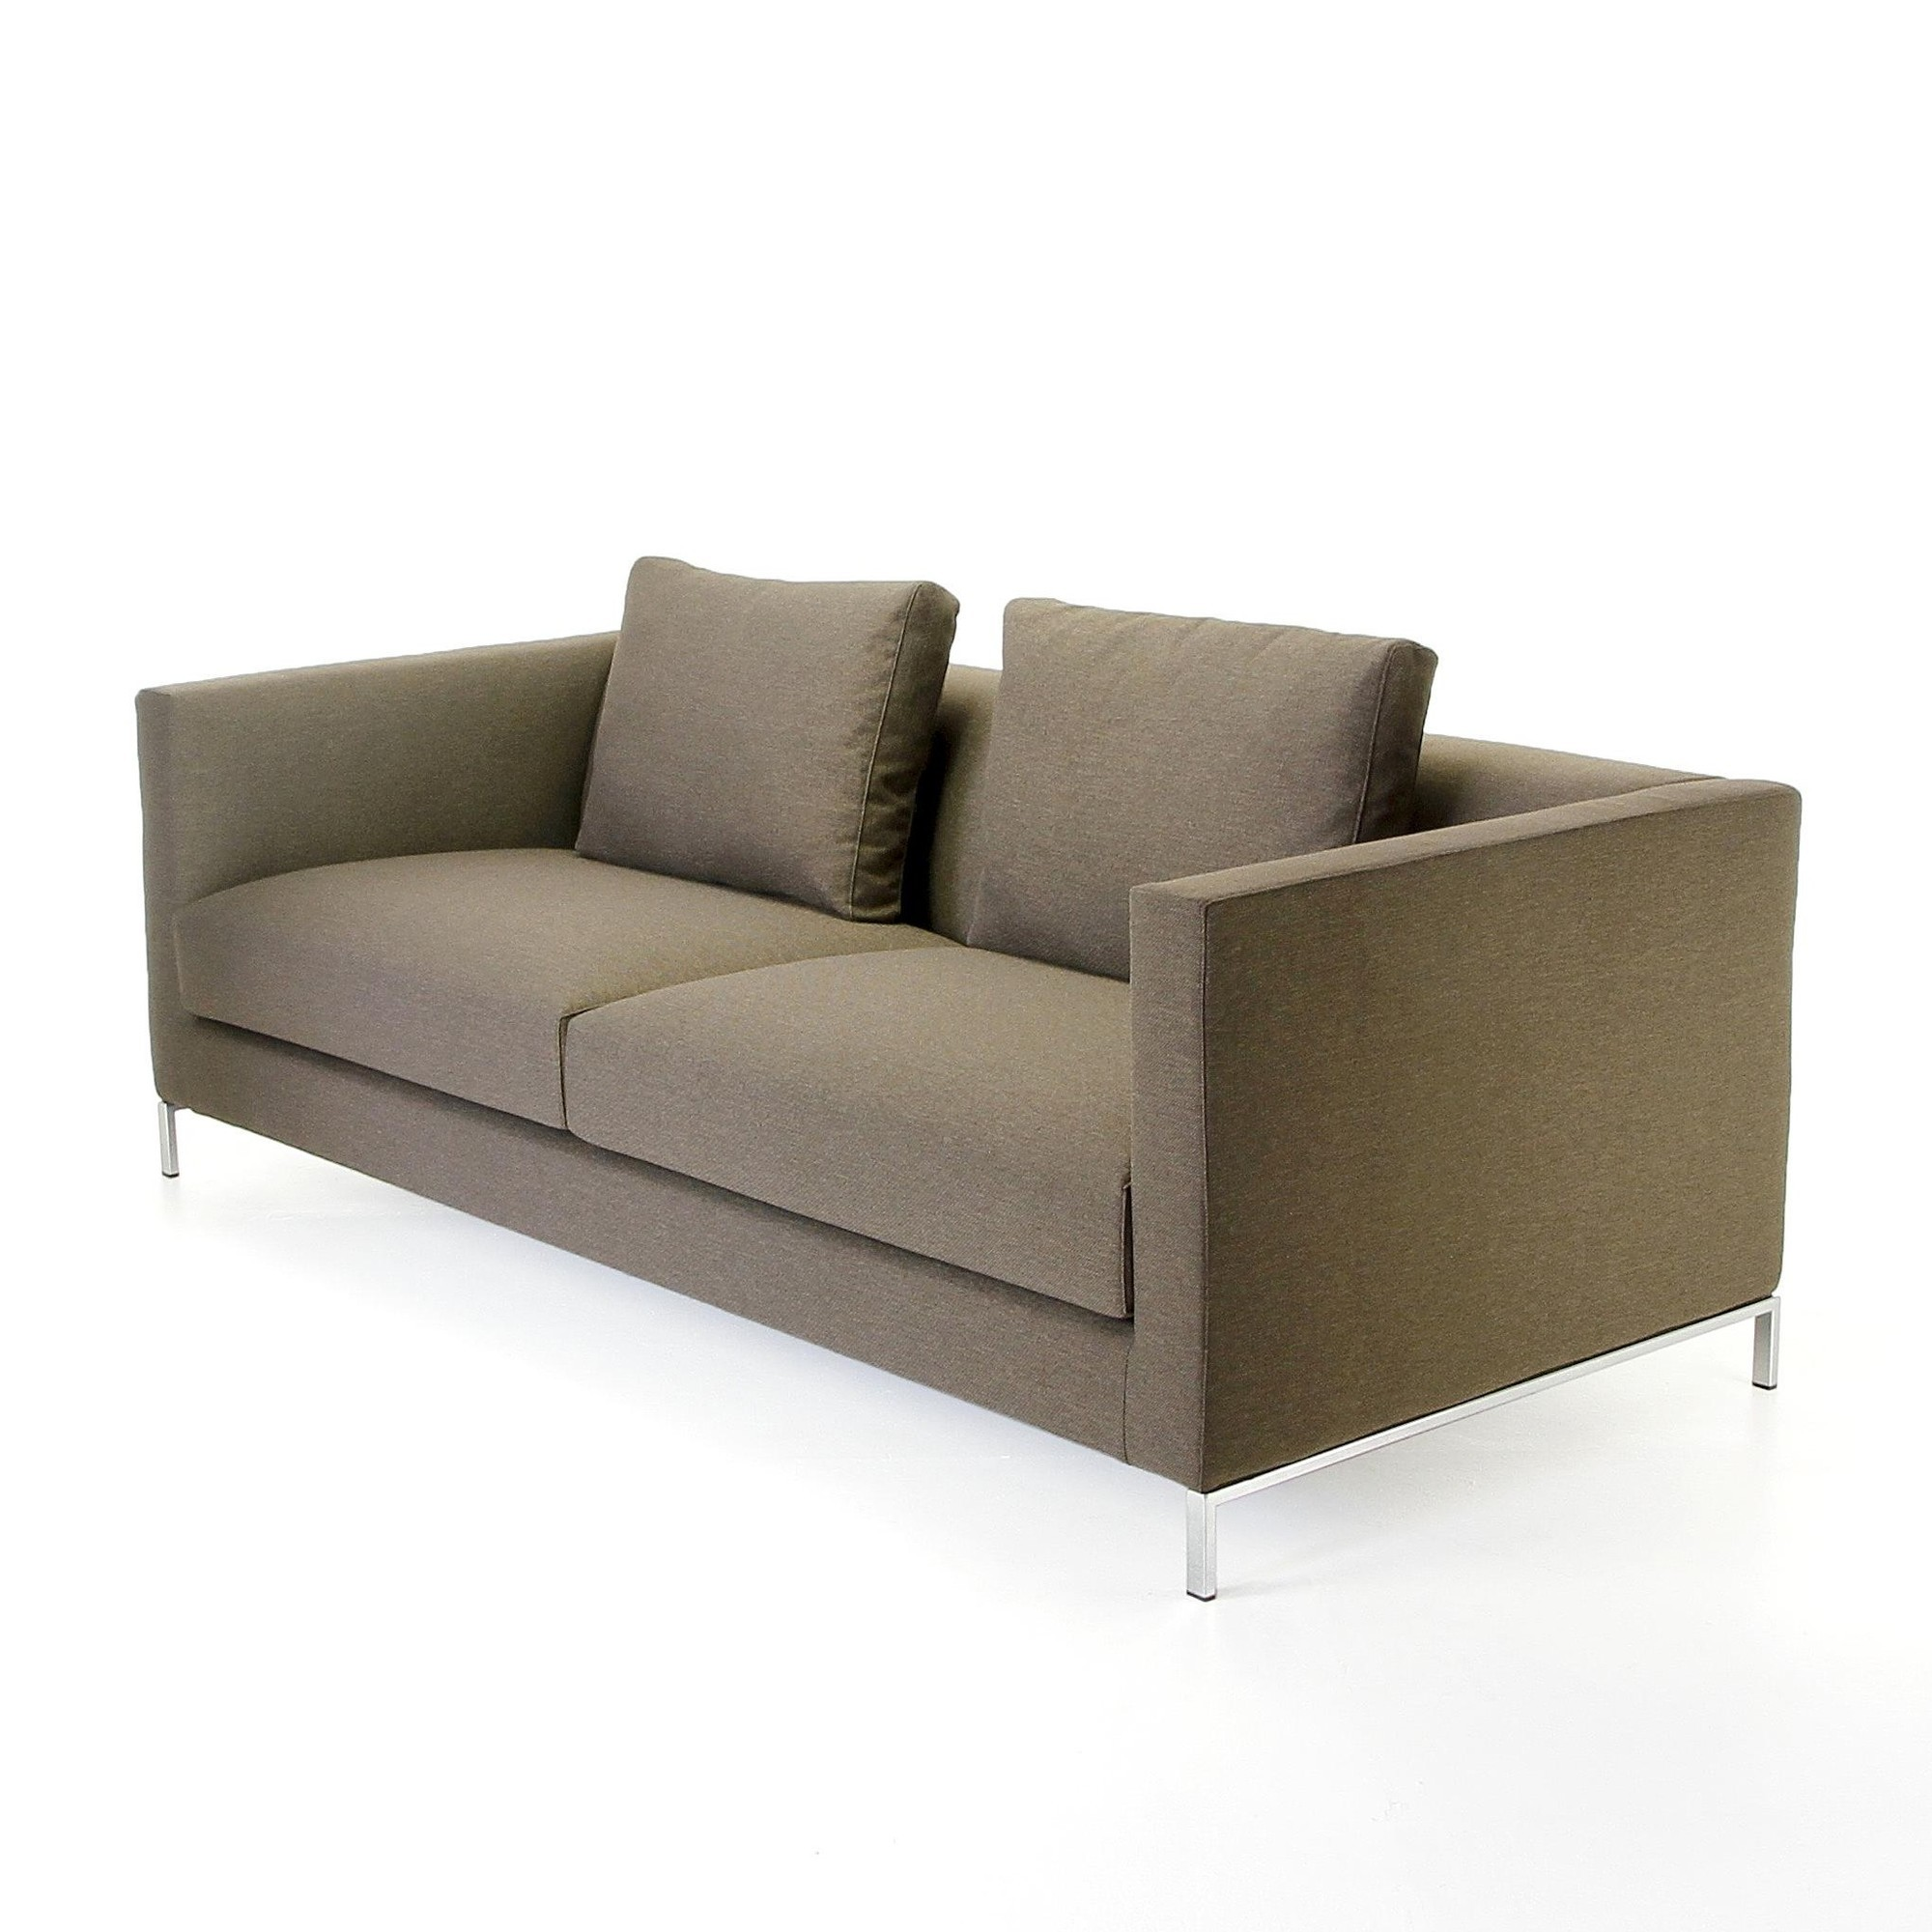 adwood cube sofa 3 sitzer couch ambientedirect. Black Bedroom Furniture Sets. Home Design Ideas